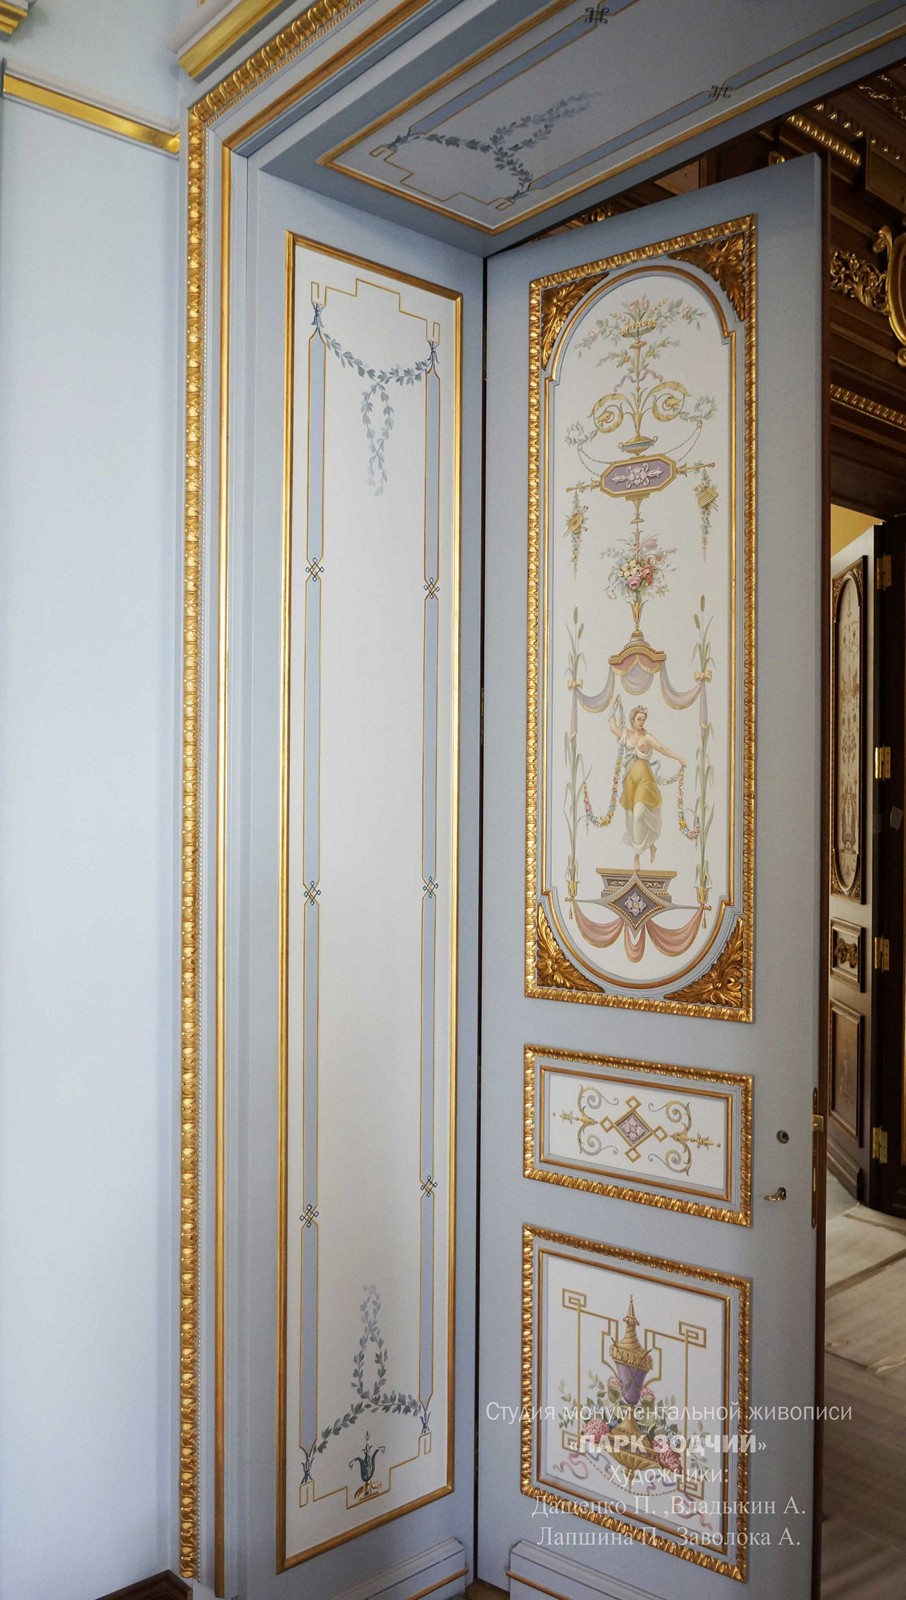 Painted doorway with polychrome